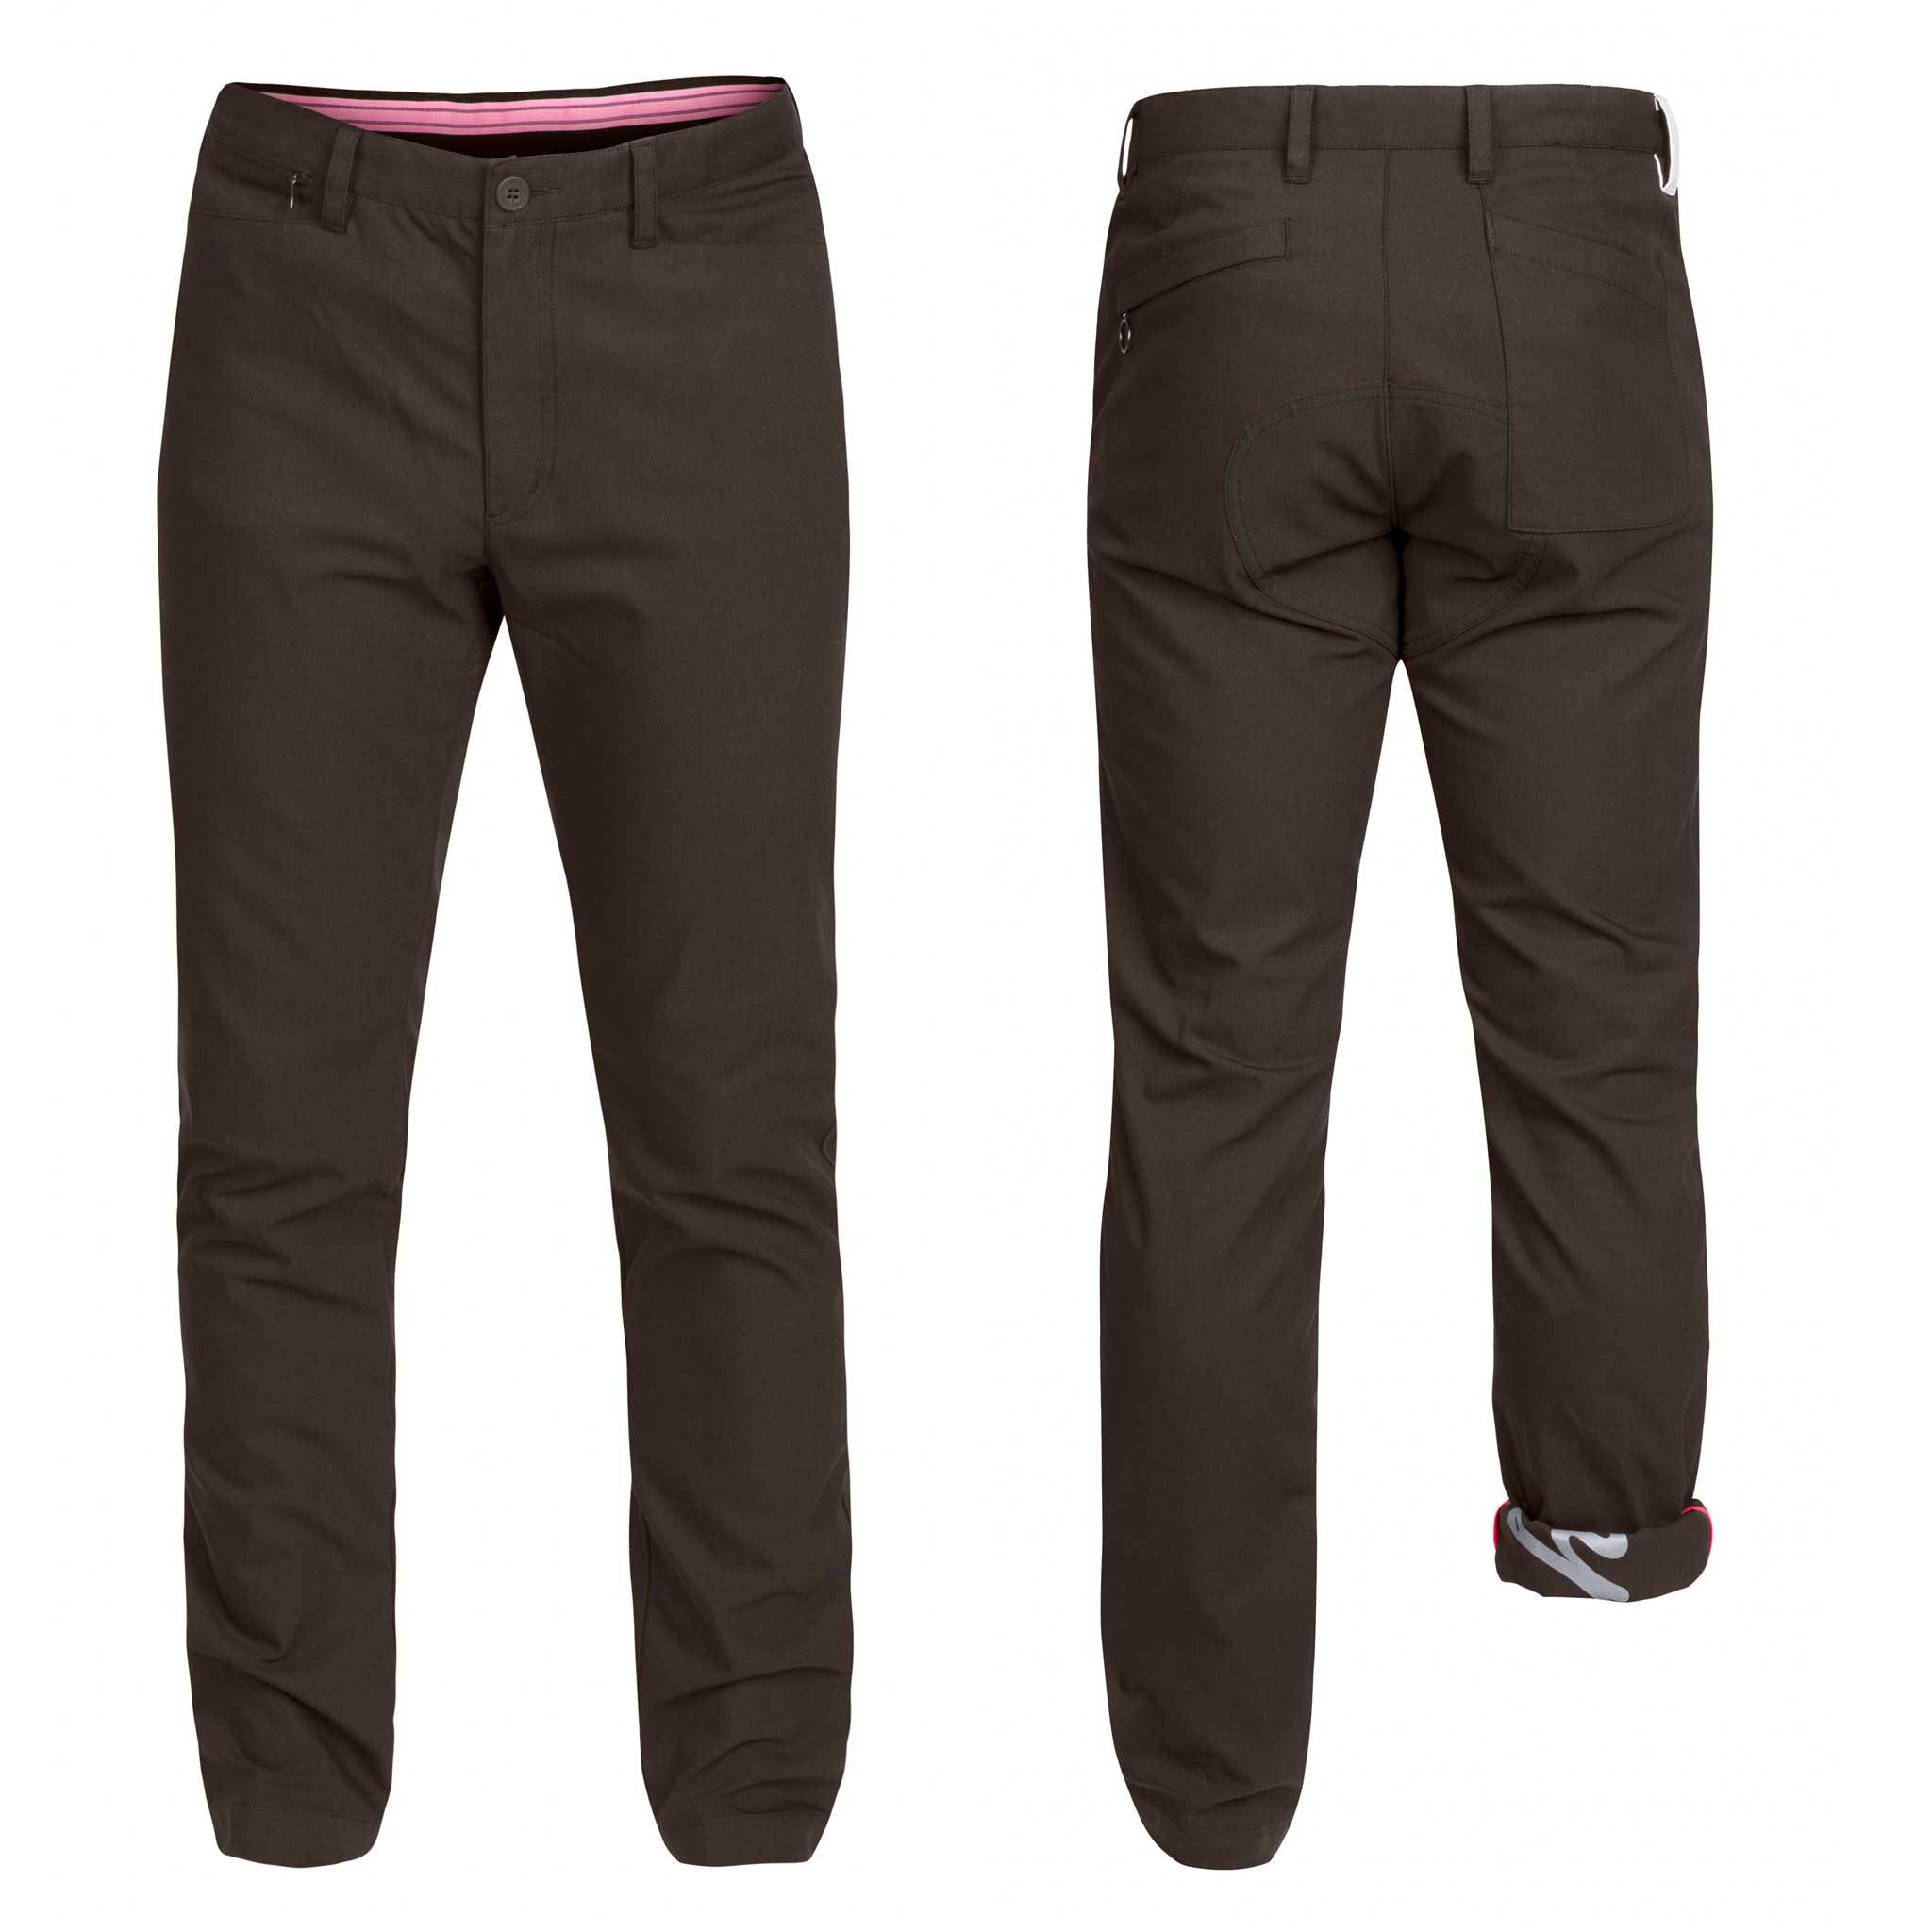 Touring Trousers